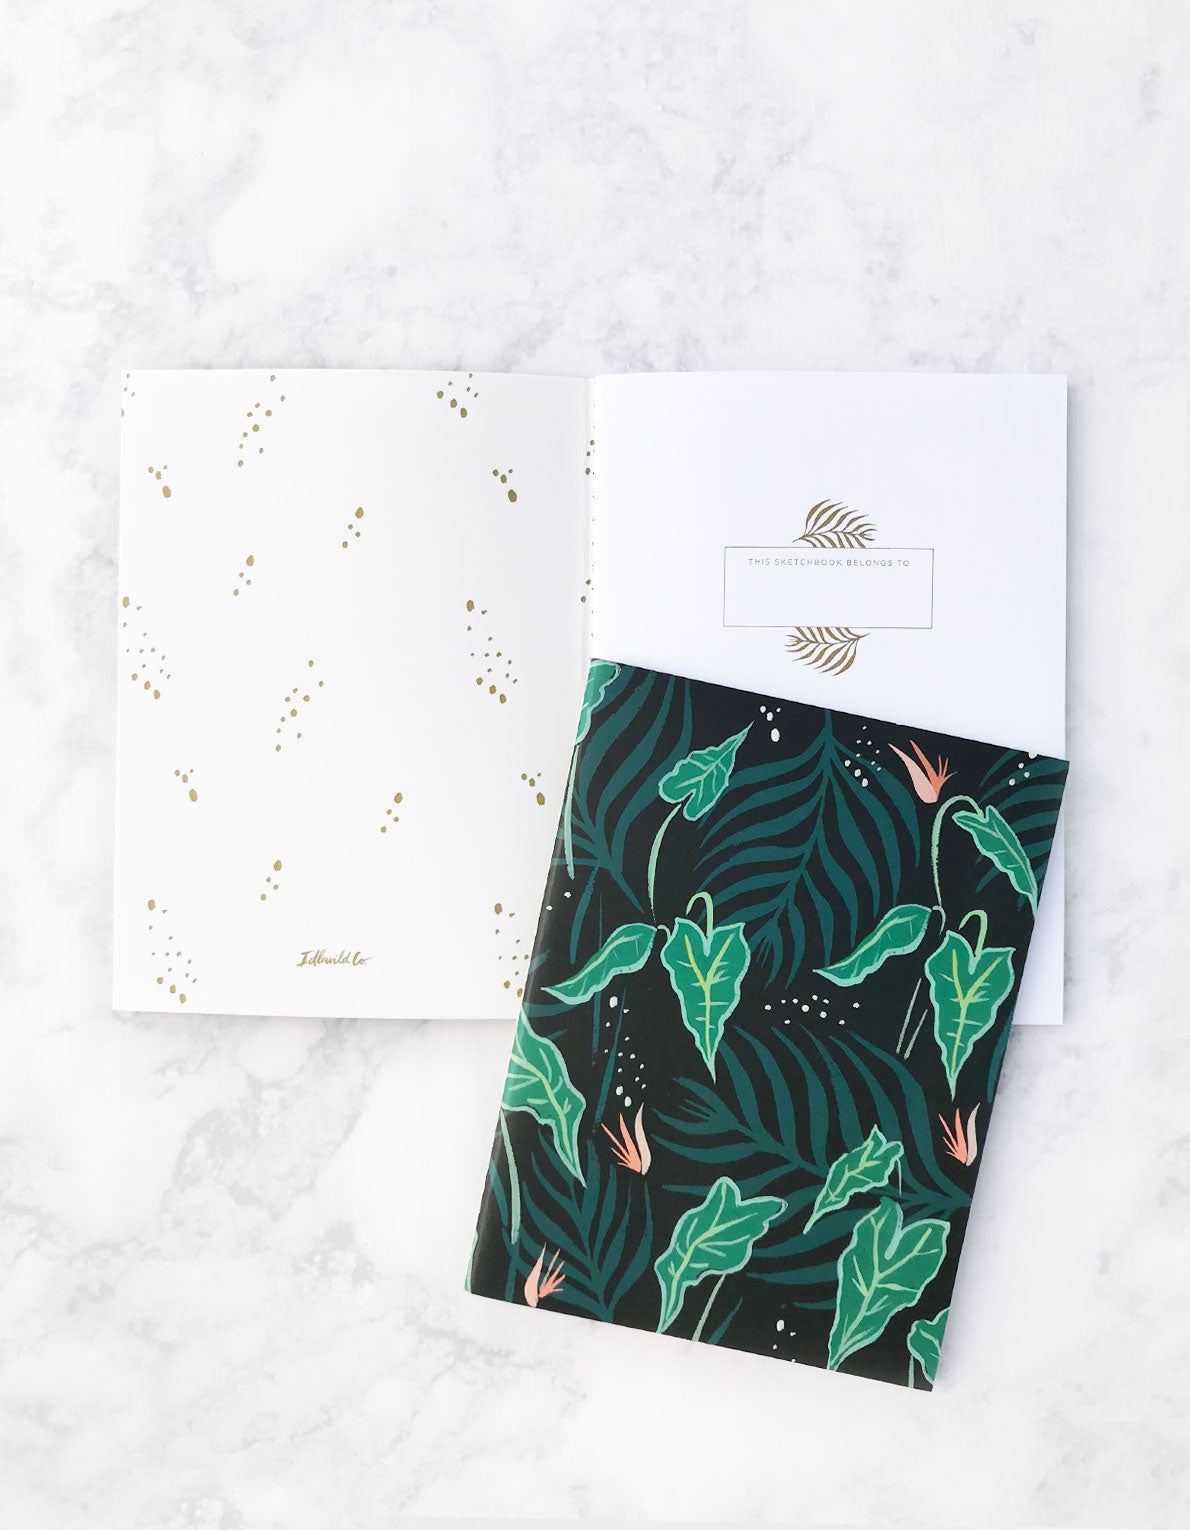 Lush Greens Pocket Book Duo by Idlewild Co by Justina Blakeney